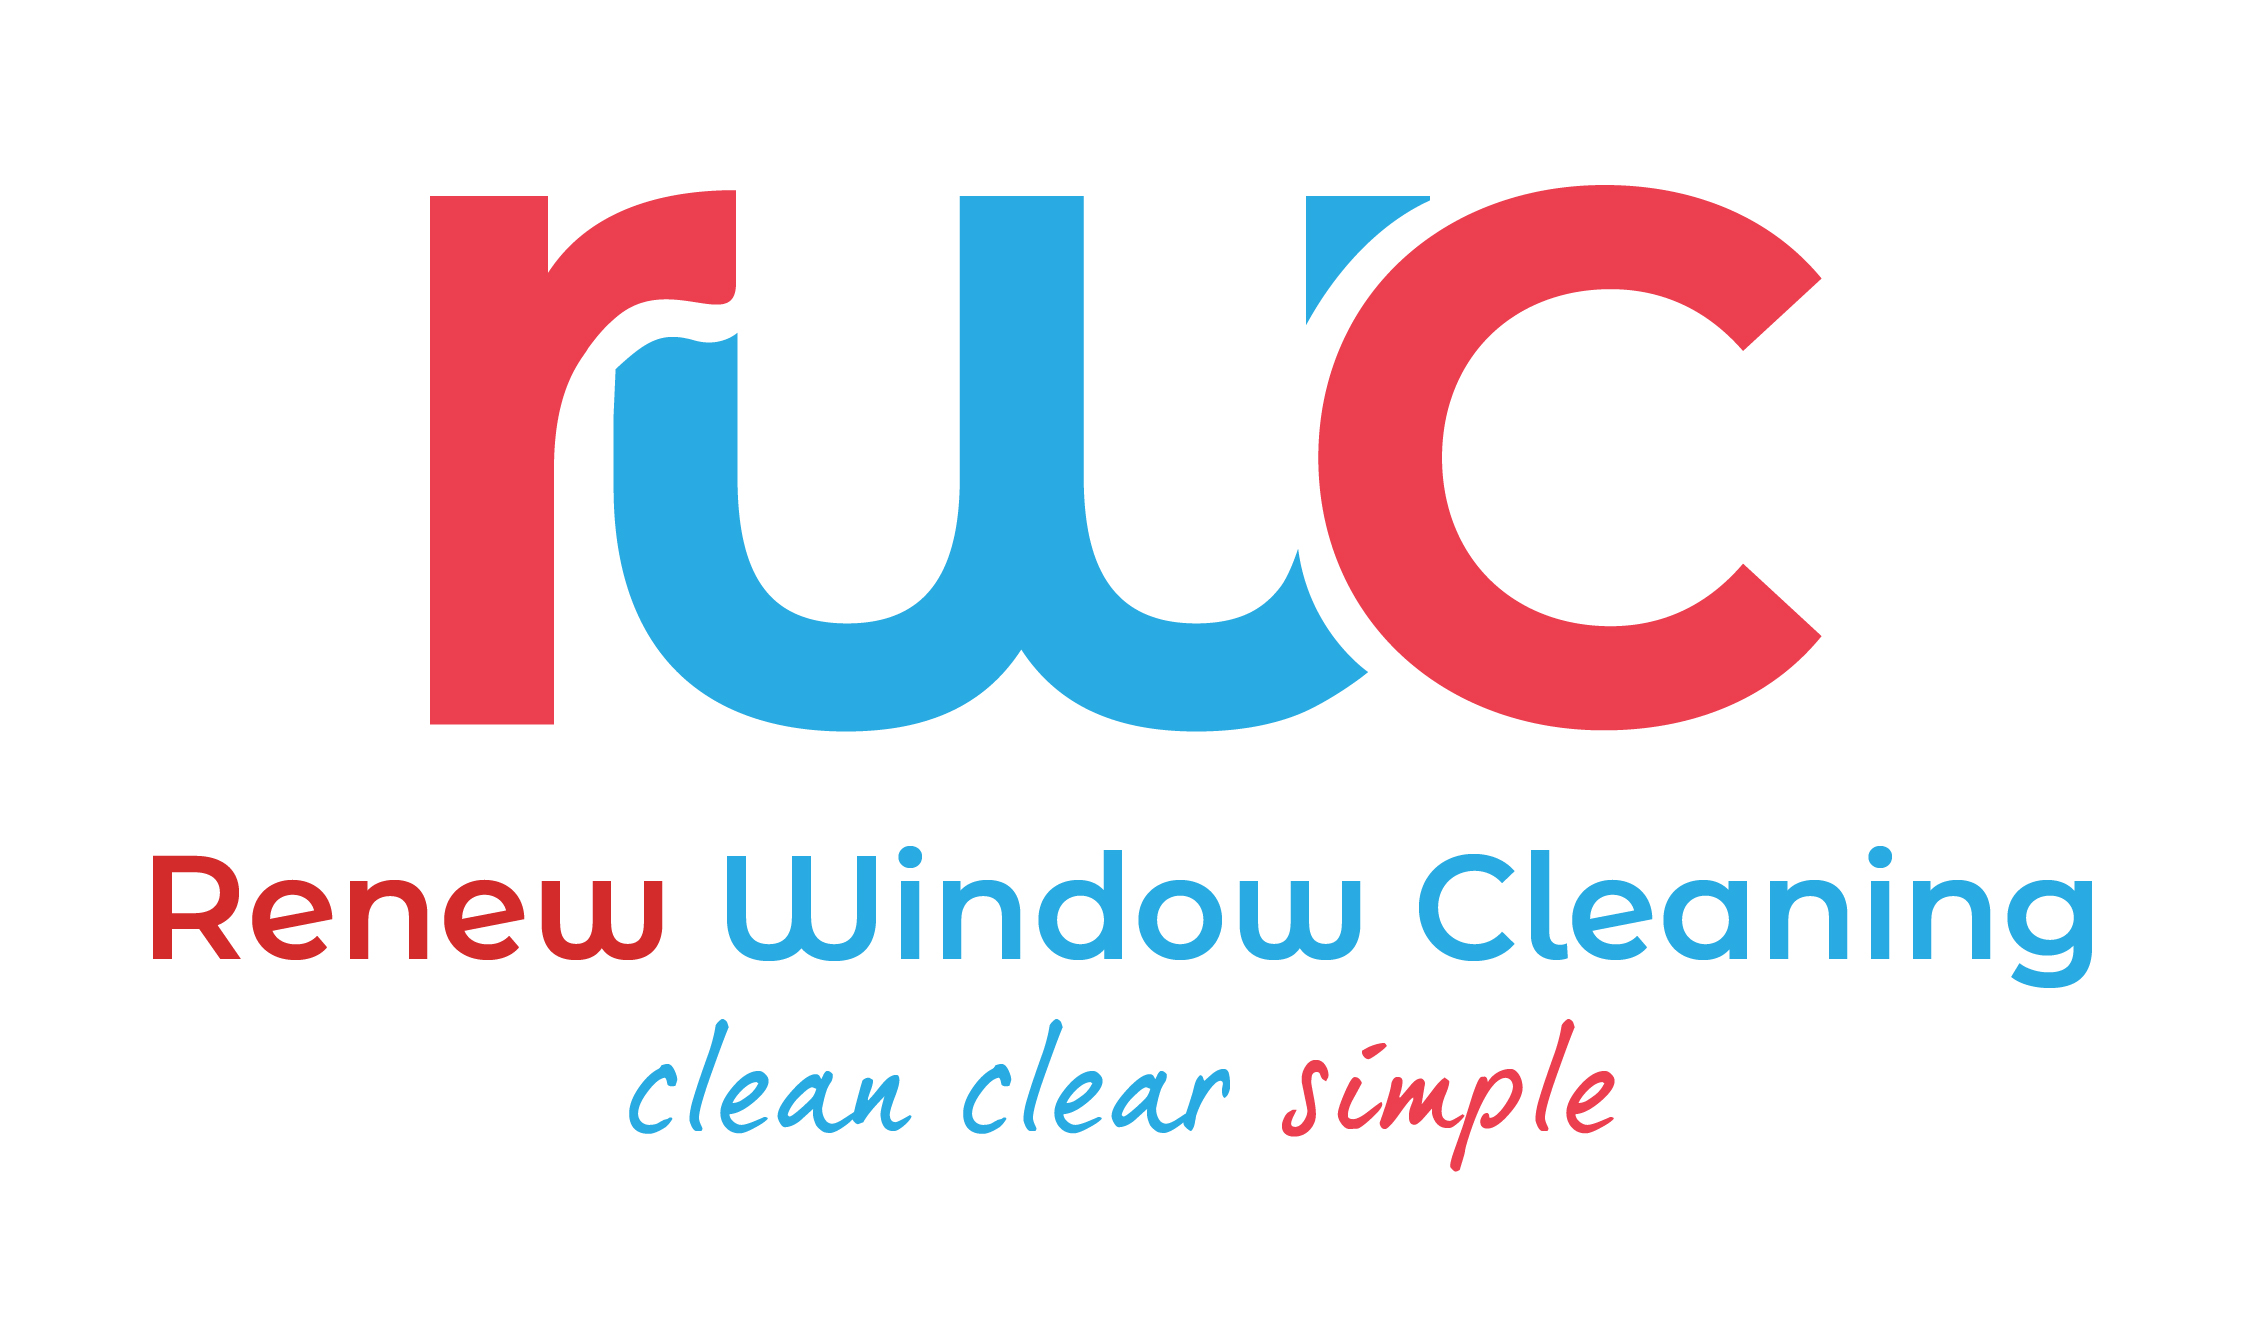 Renew Window Cleaning